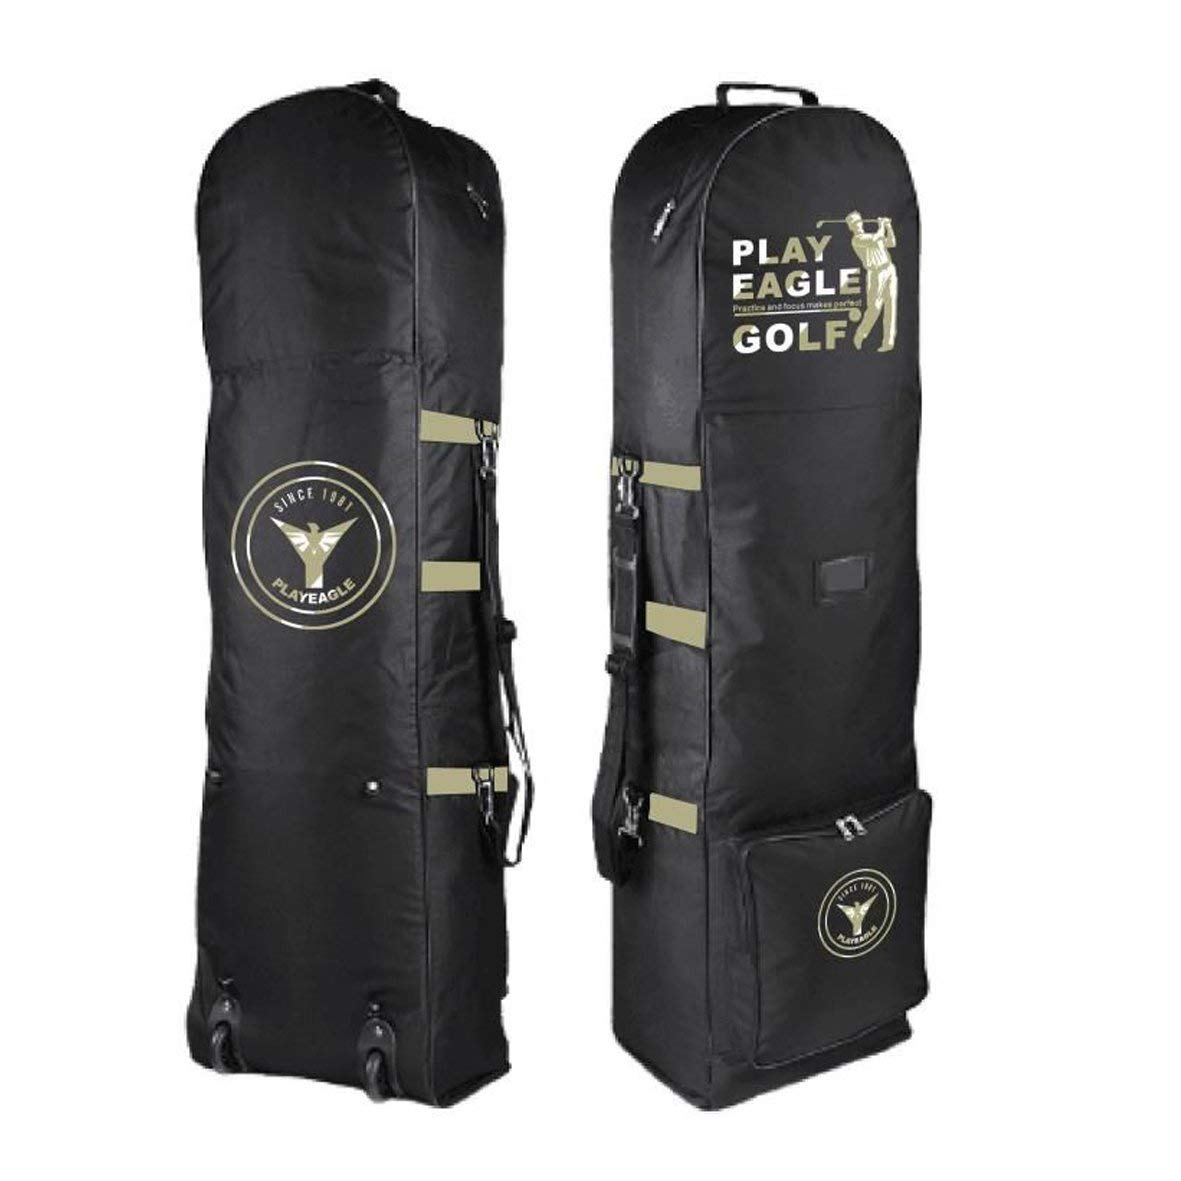 69385413e4 PLAYEAGLE Golf Travel Bag Cover with Wheels Foldable Double Zipper  Lightweight Trolley Rain Cover with Password